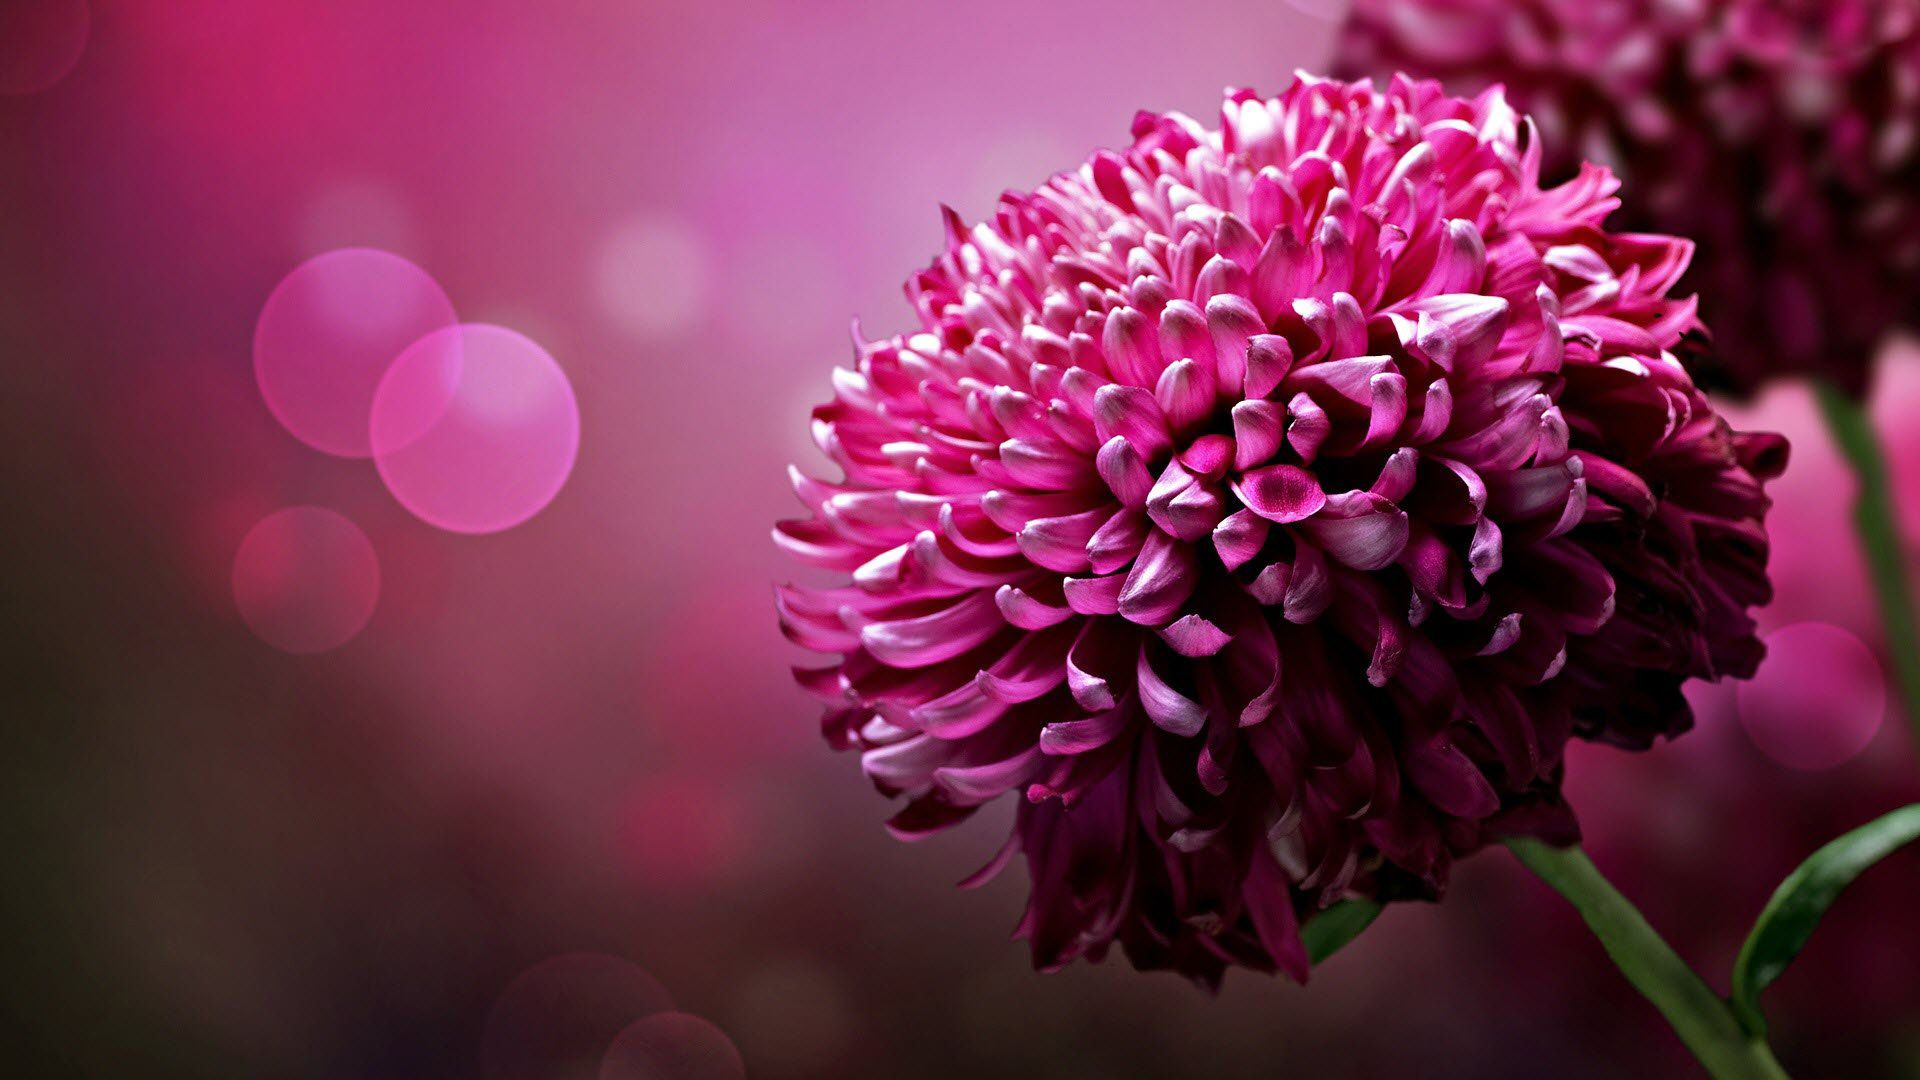 Download flower wallpapers flower pics flower picture flower